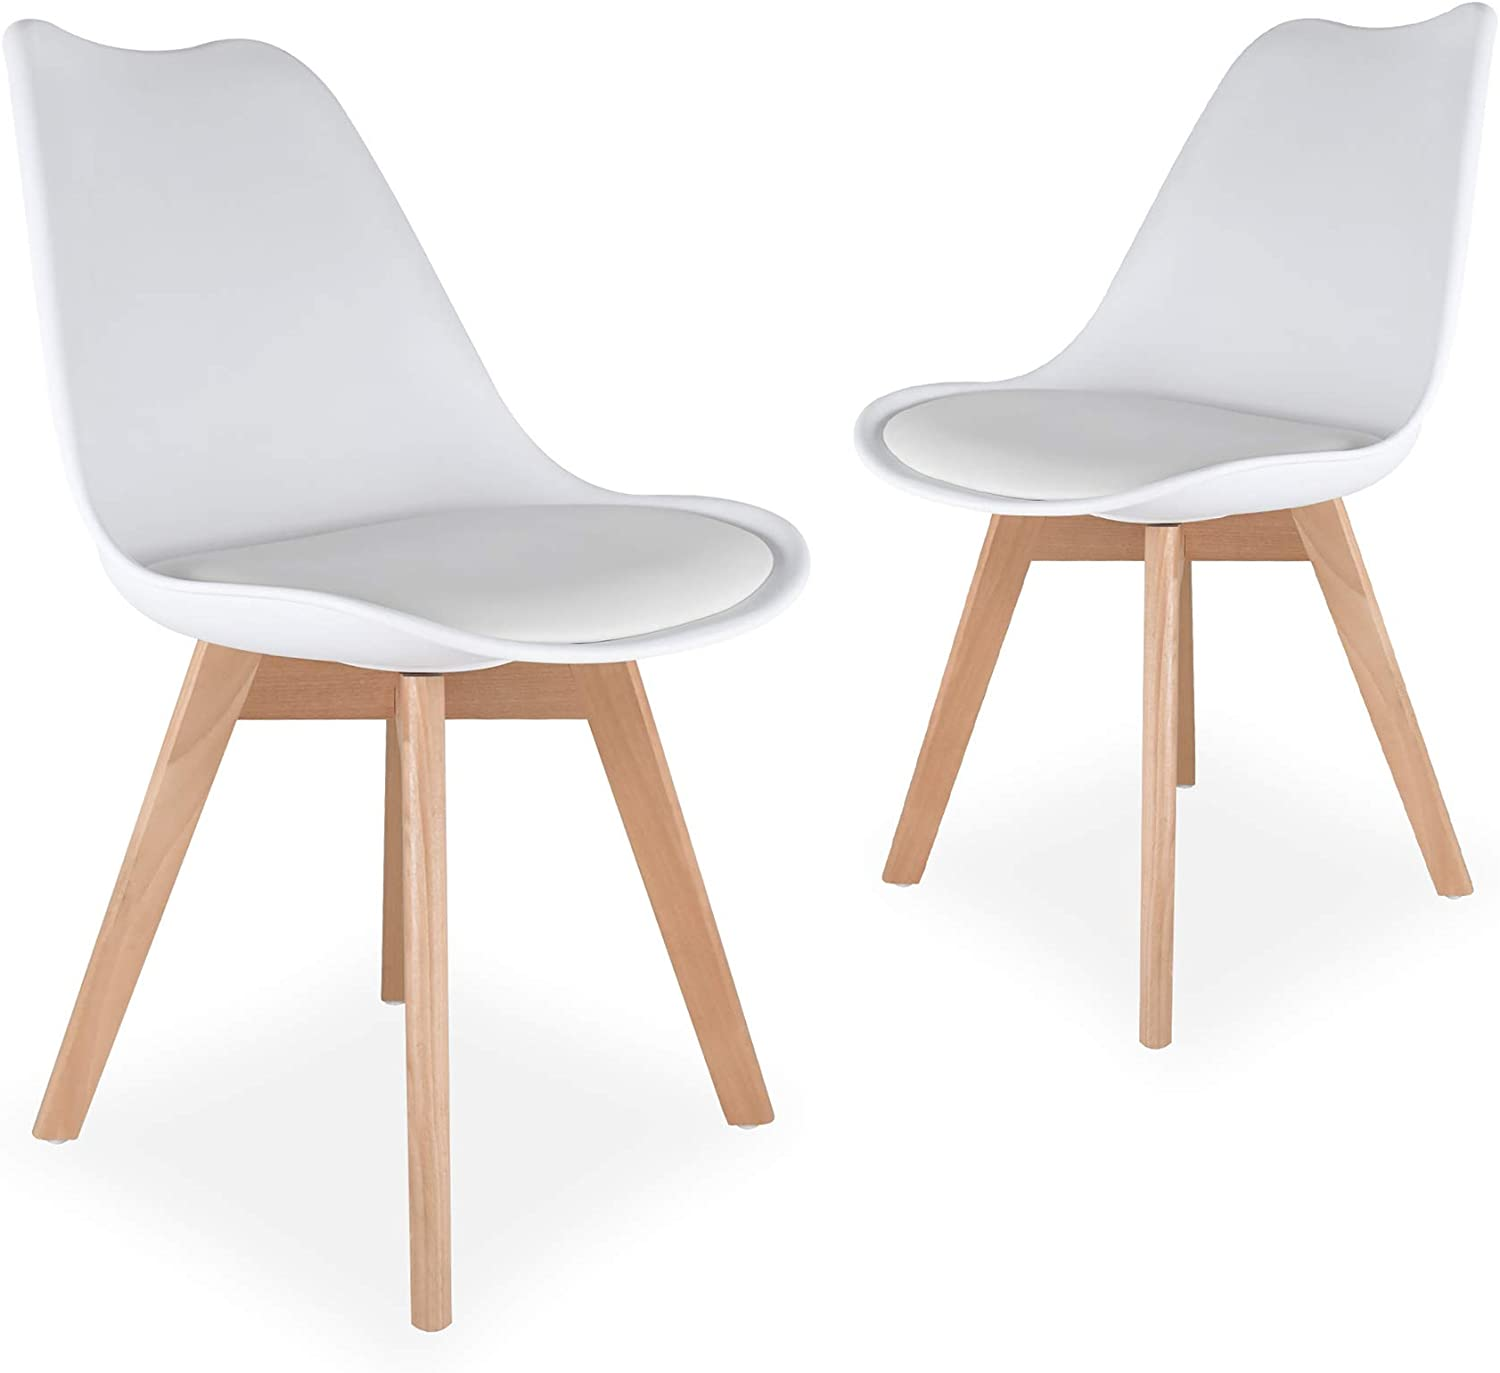 netuera Dining Chairs Mid Century Modern Wood Award Special Campaign Chair PU DSW Tulip